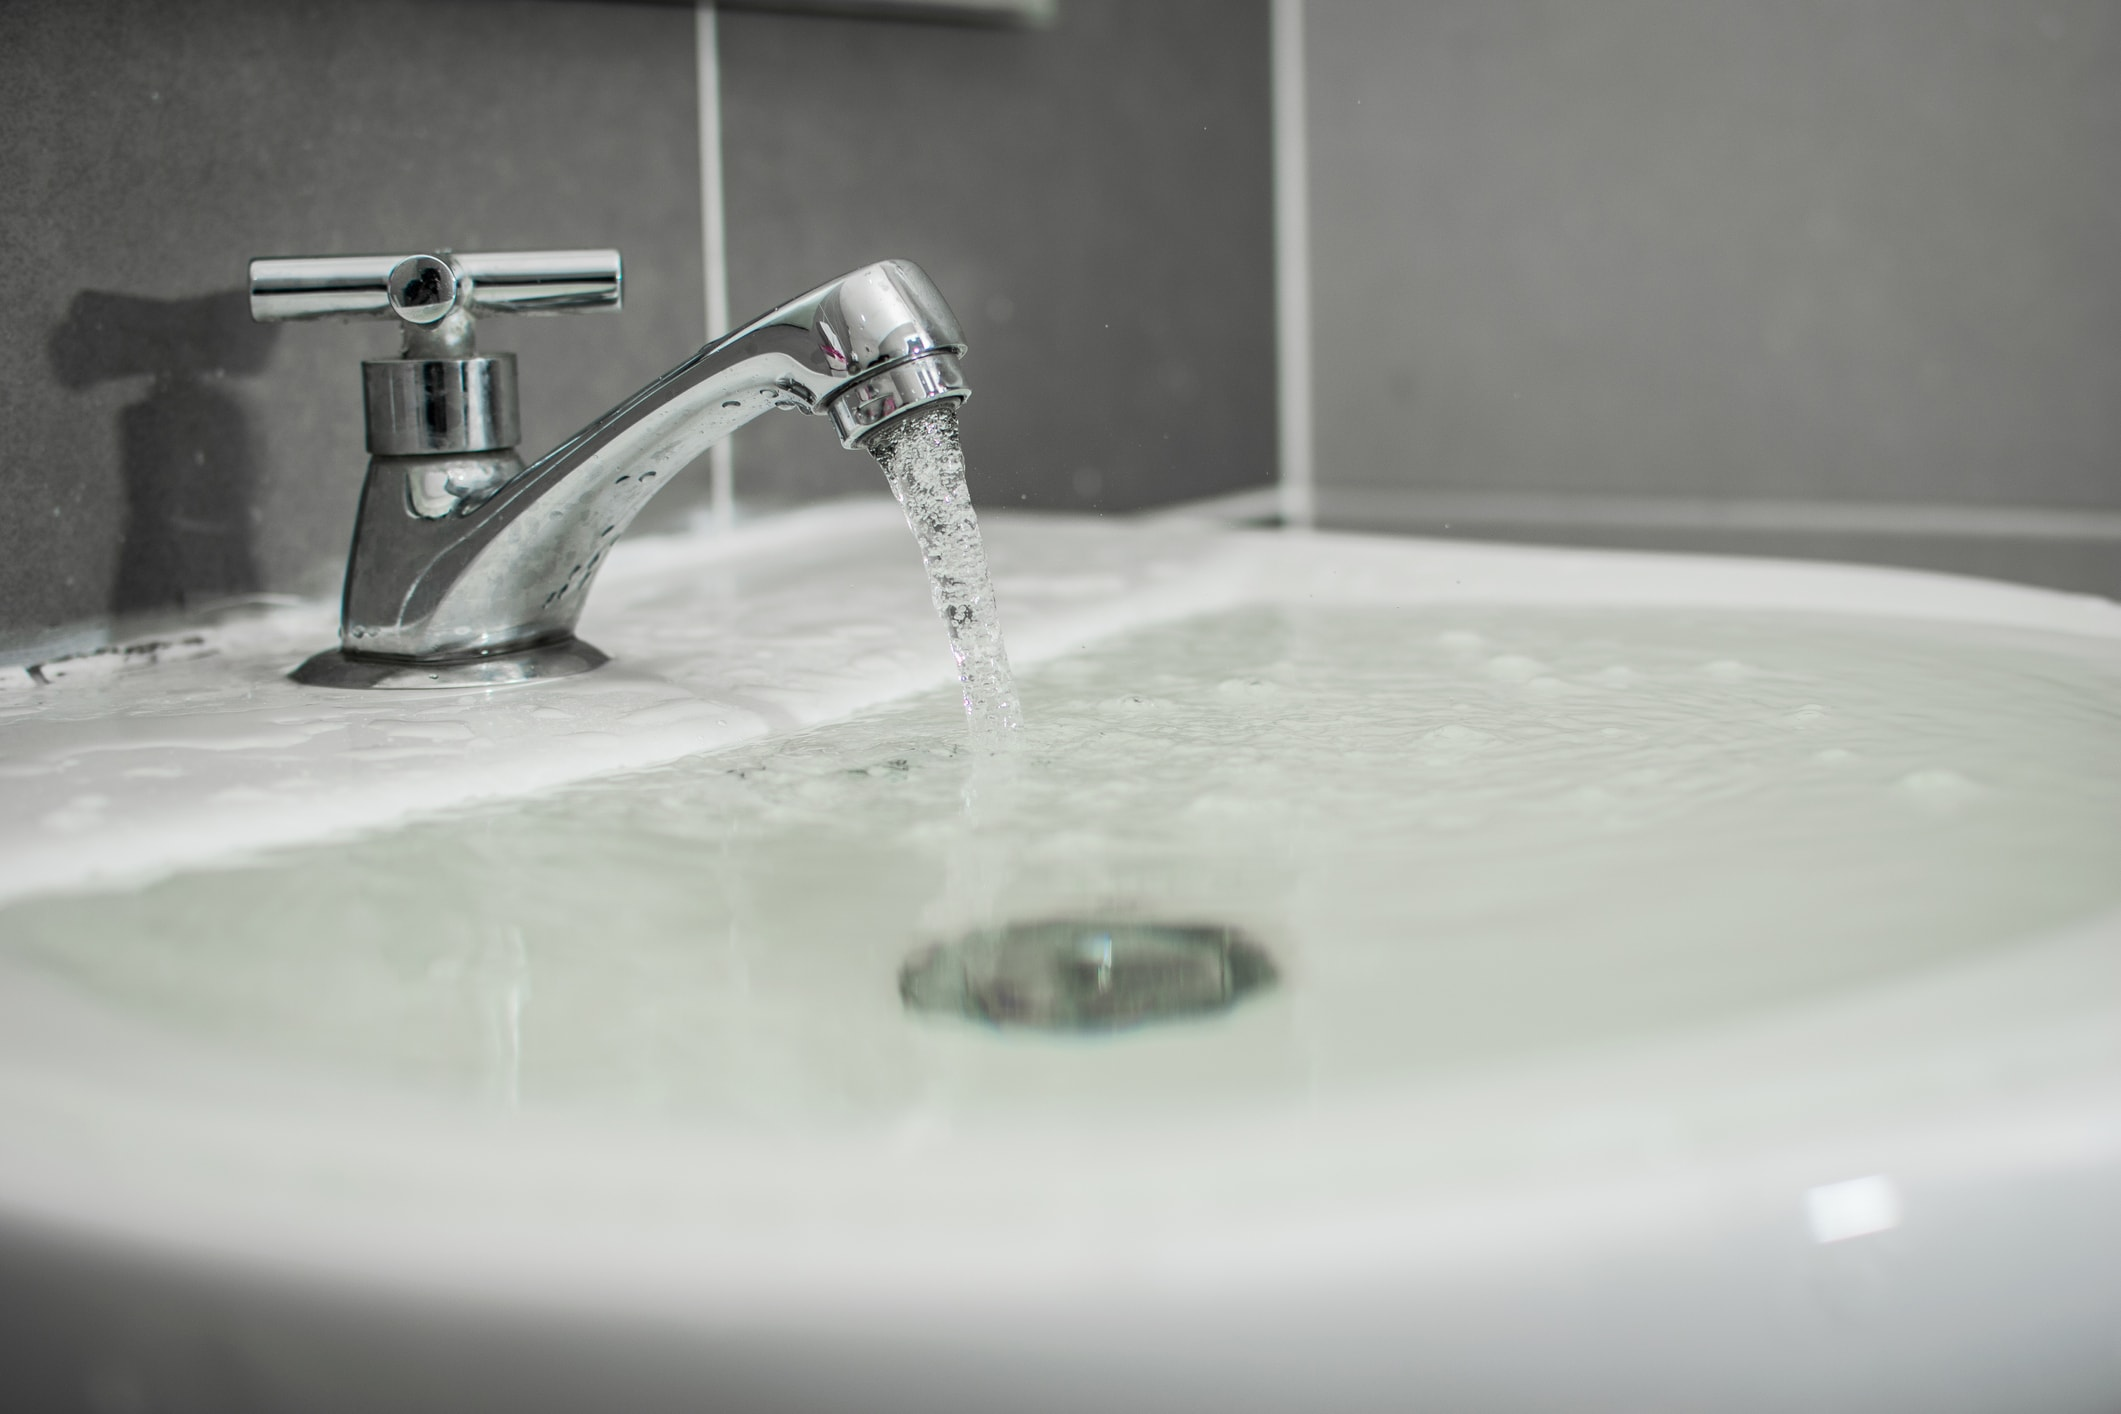 How to Find the Main Water Valve — and Why It's Important